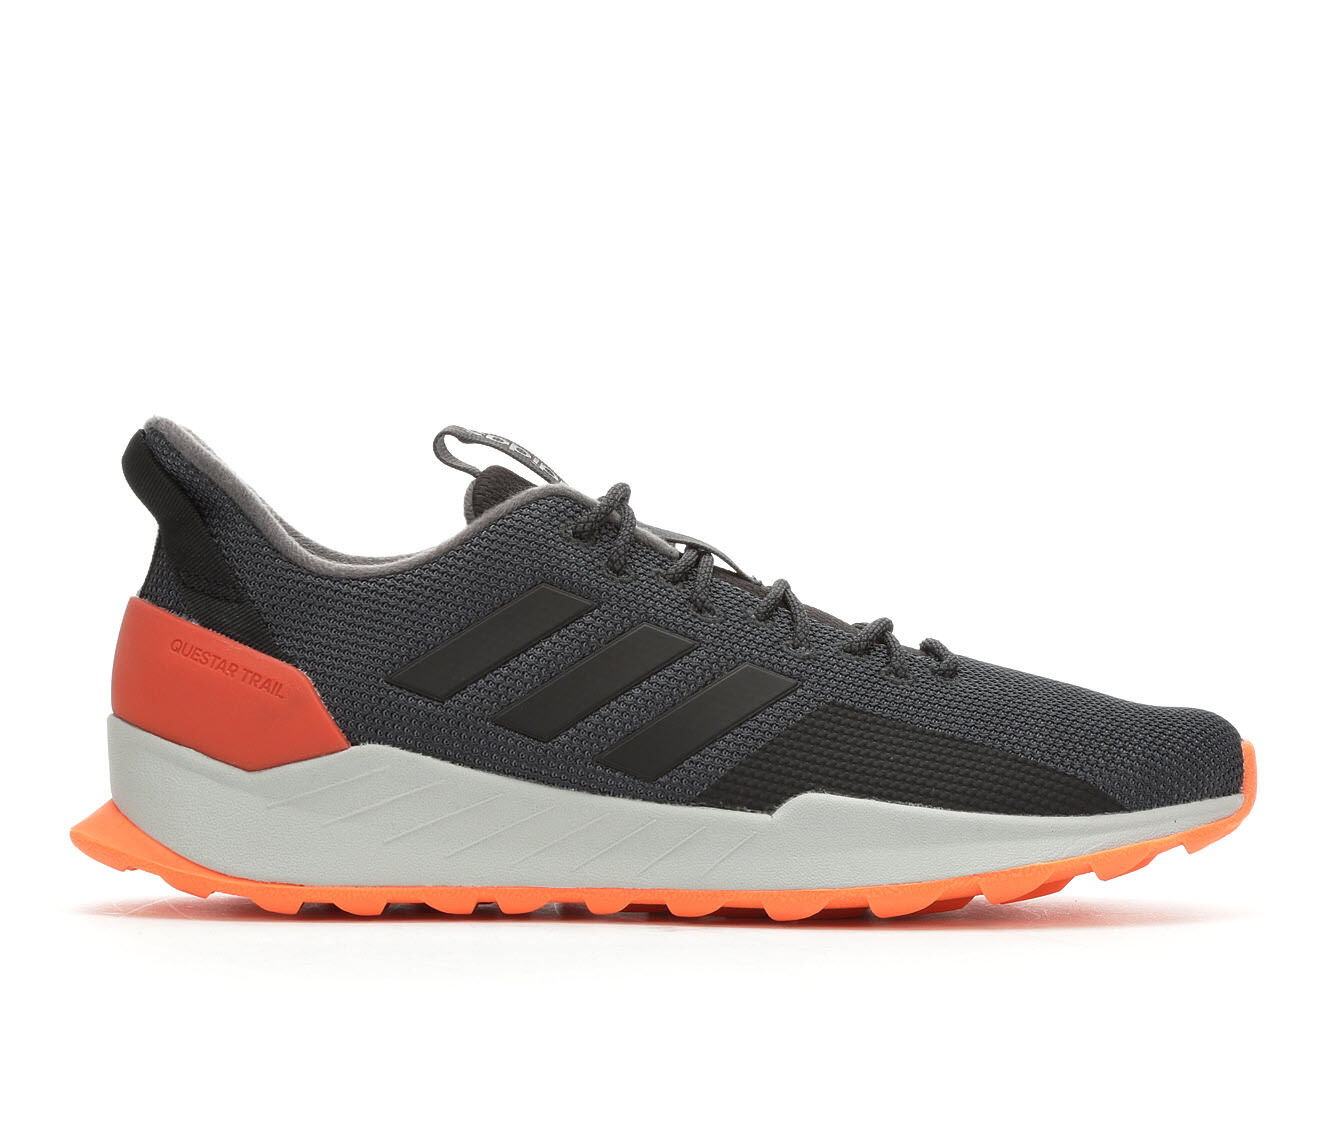 Men's Adidas Questar Trail Running Shoes Gry/Blk/Org